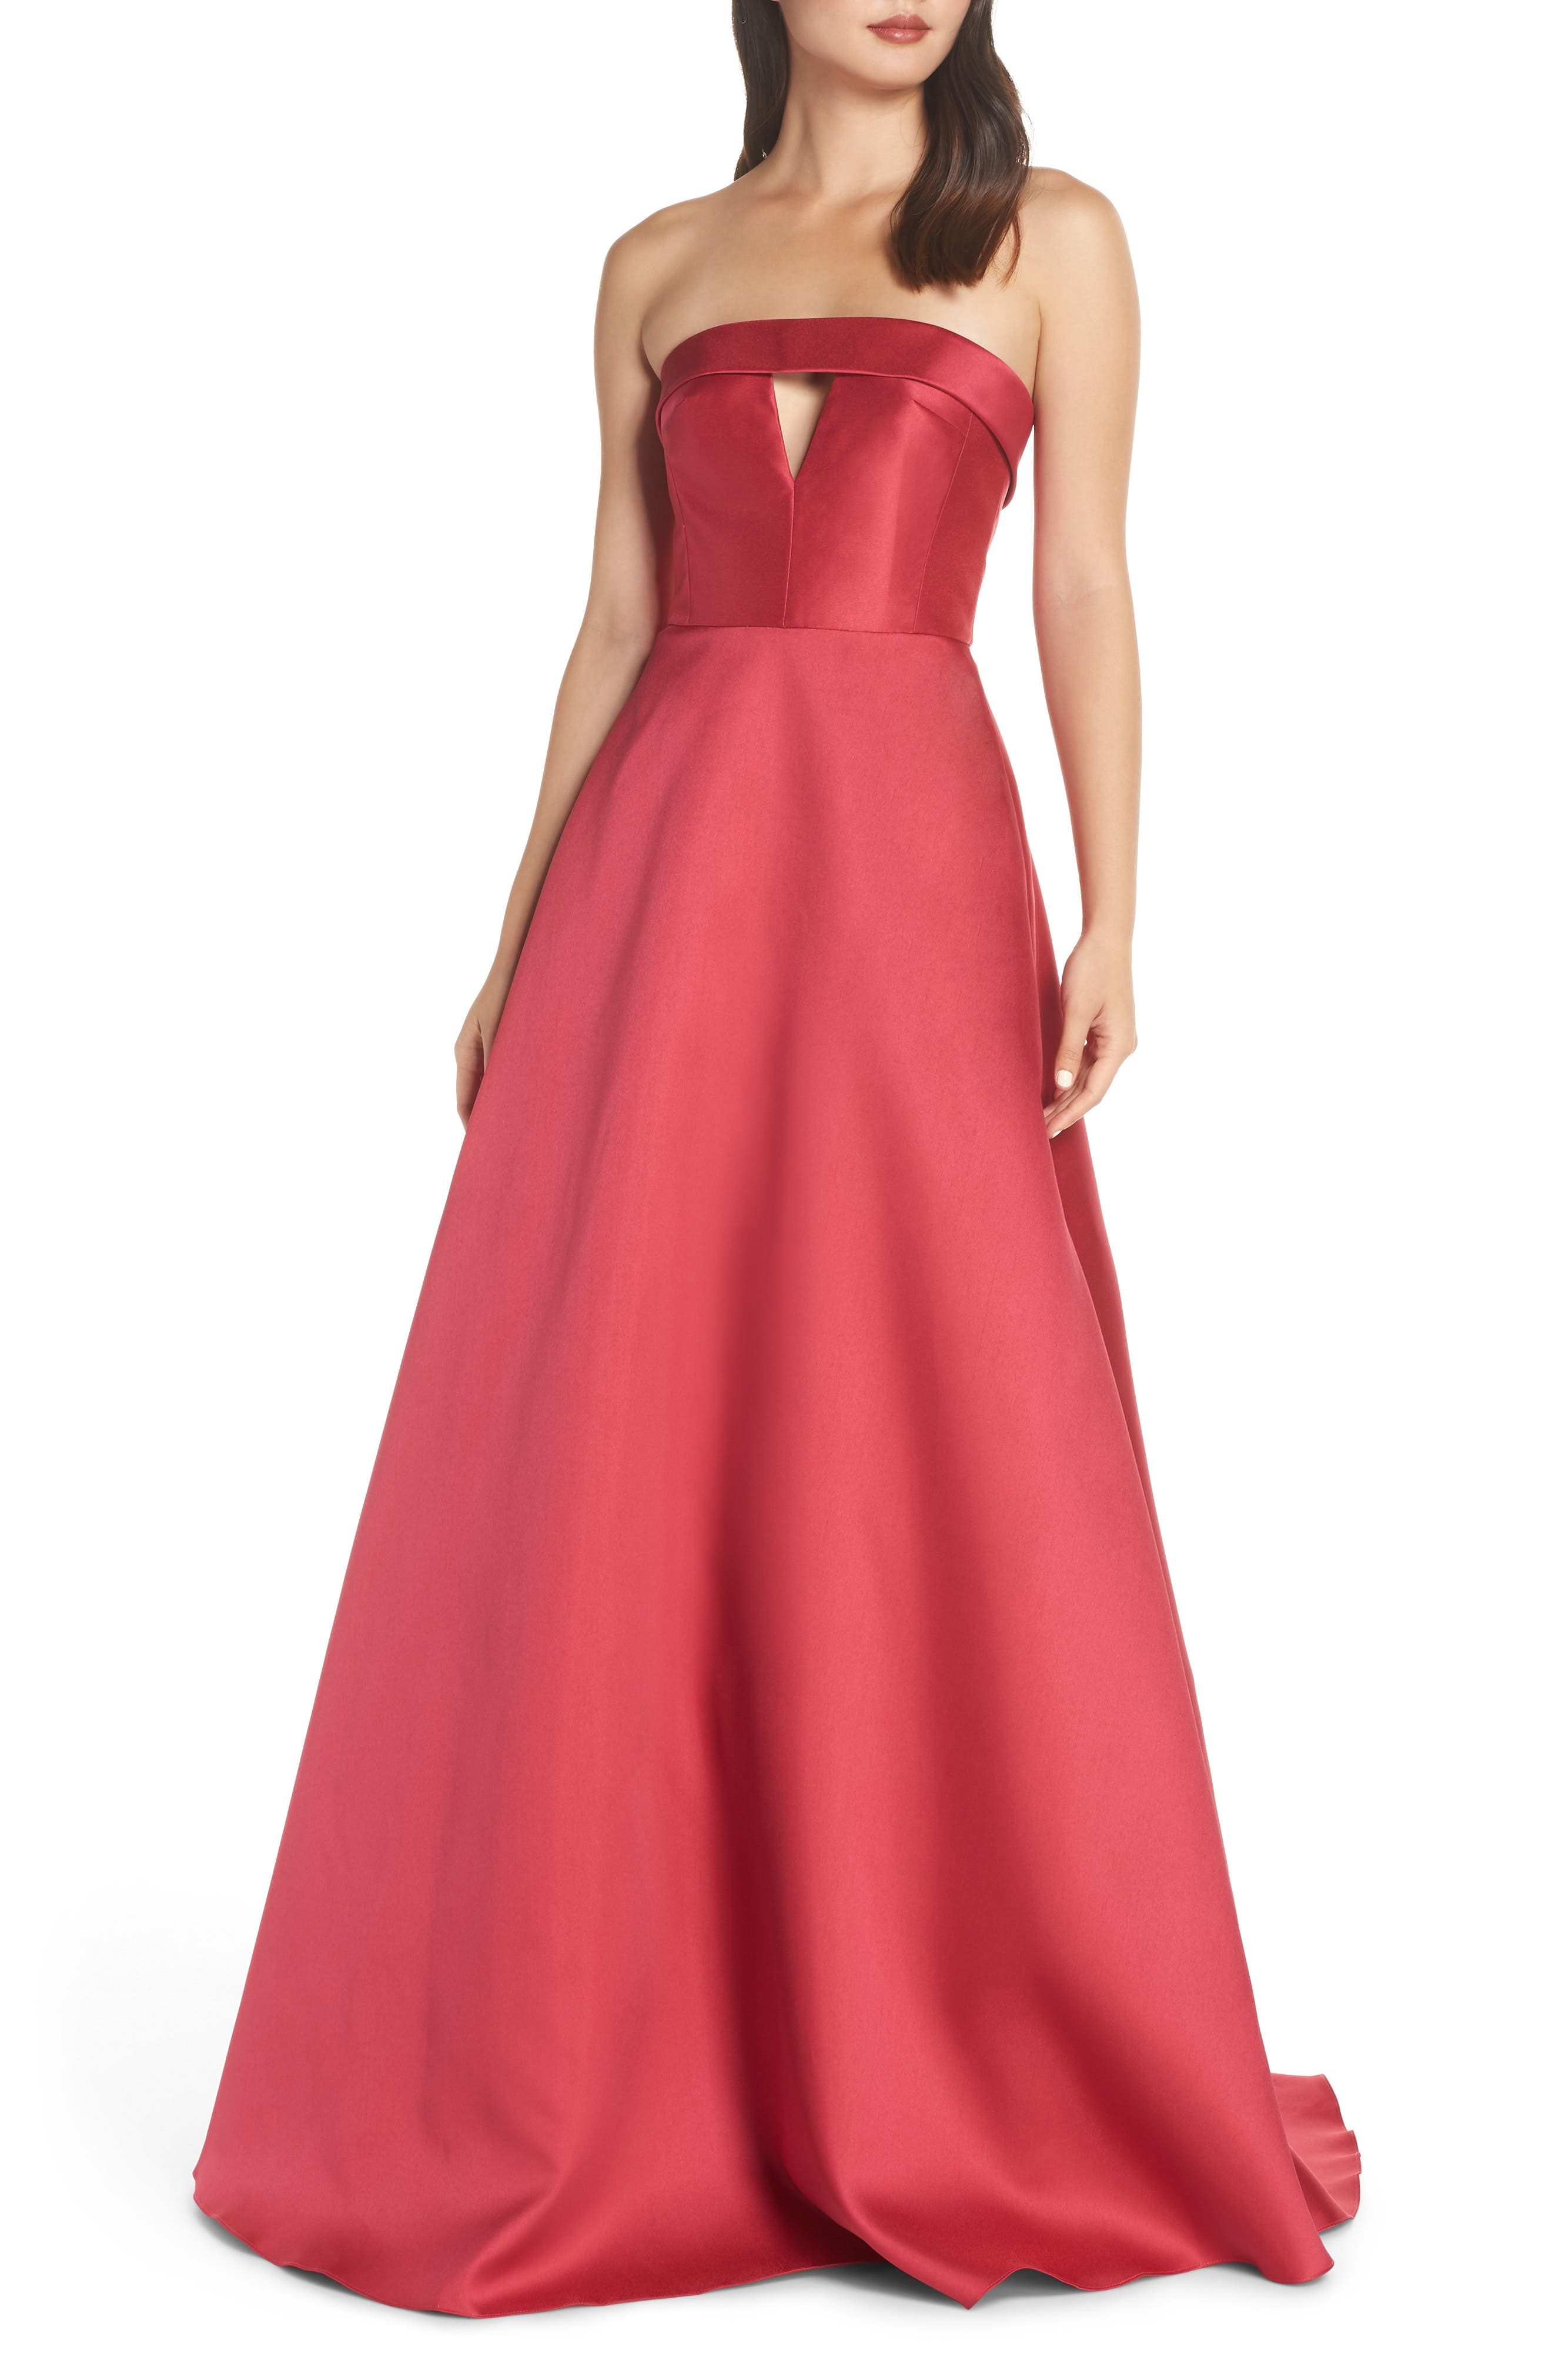 Ml Monique Lhuillier Strapless Satin Ballgown, Pink